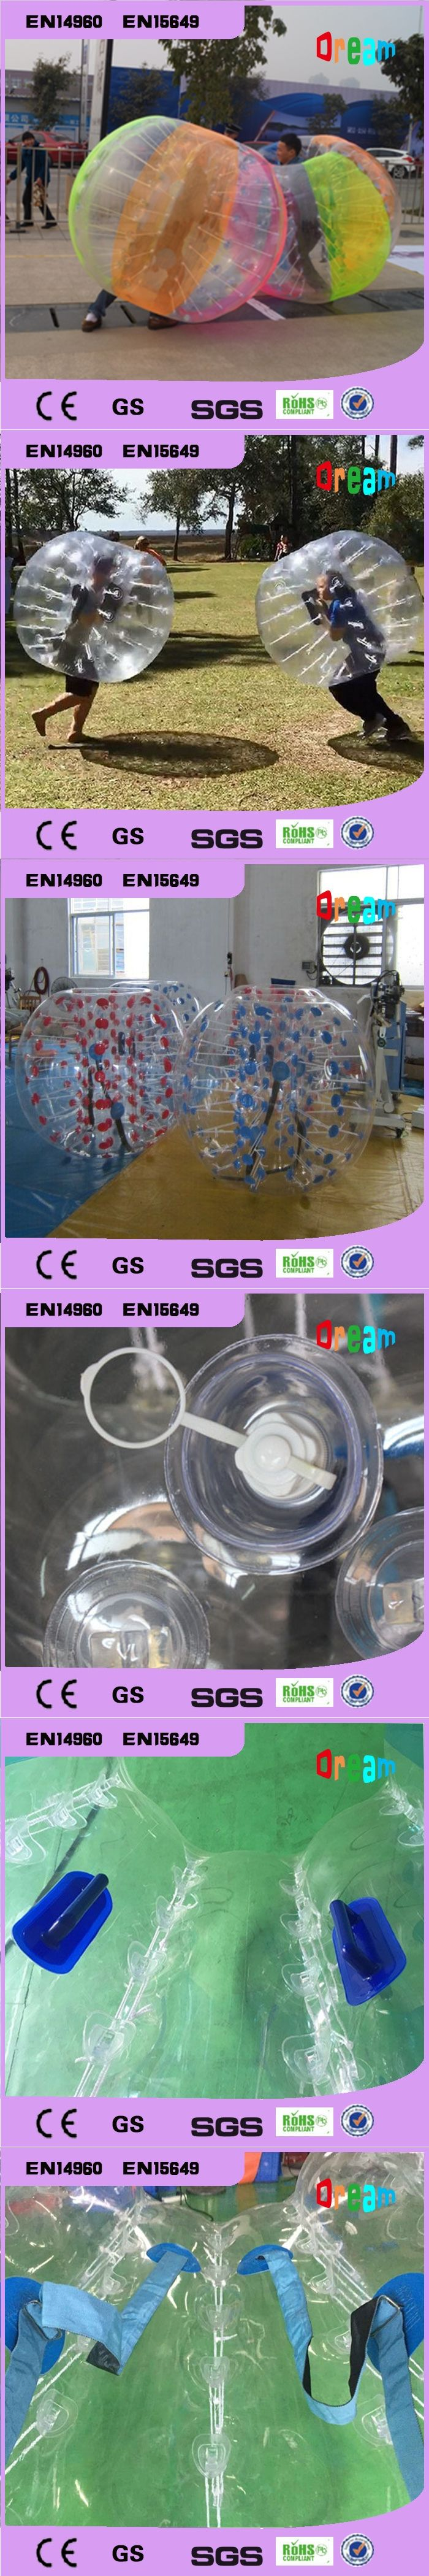 Free Shipping 1.5m Hot Sale Inflatable Football Suit Inflatable Zorb Bumper Ball Bubble Soccer Ball Body Zorb Ball Bubble Ball